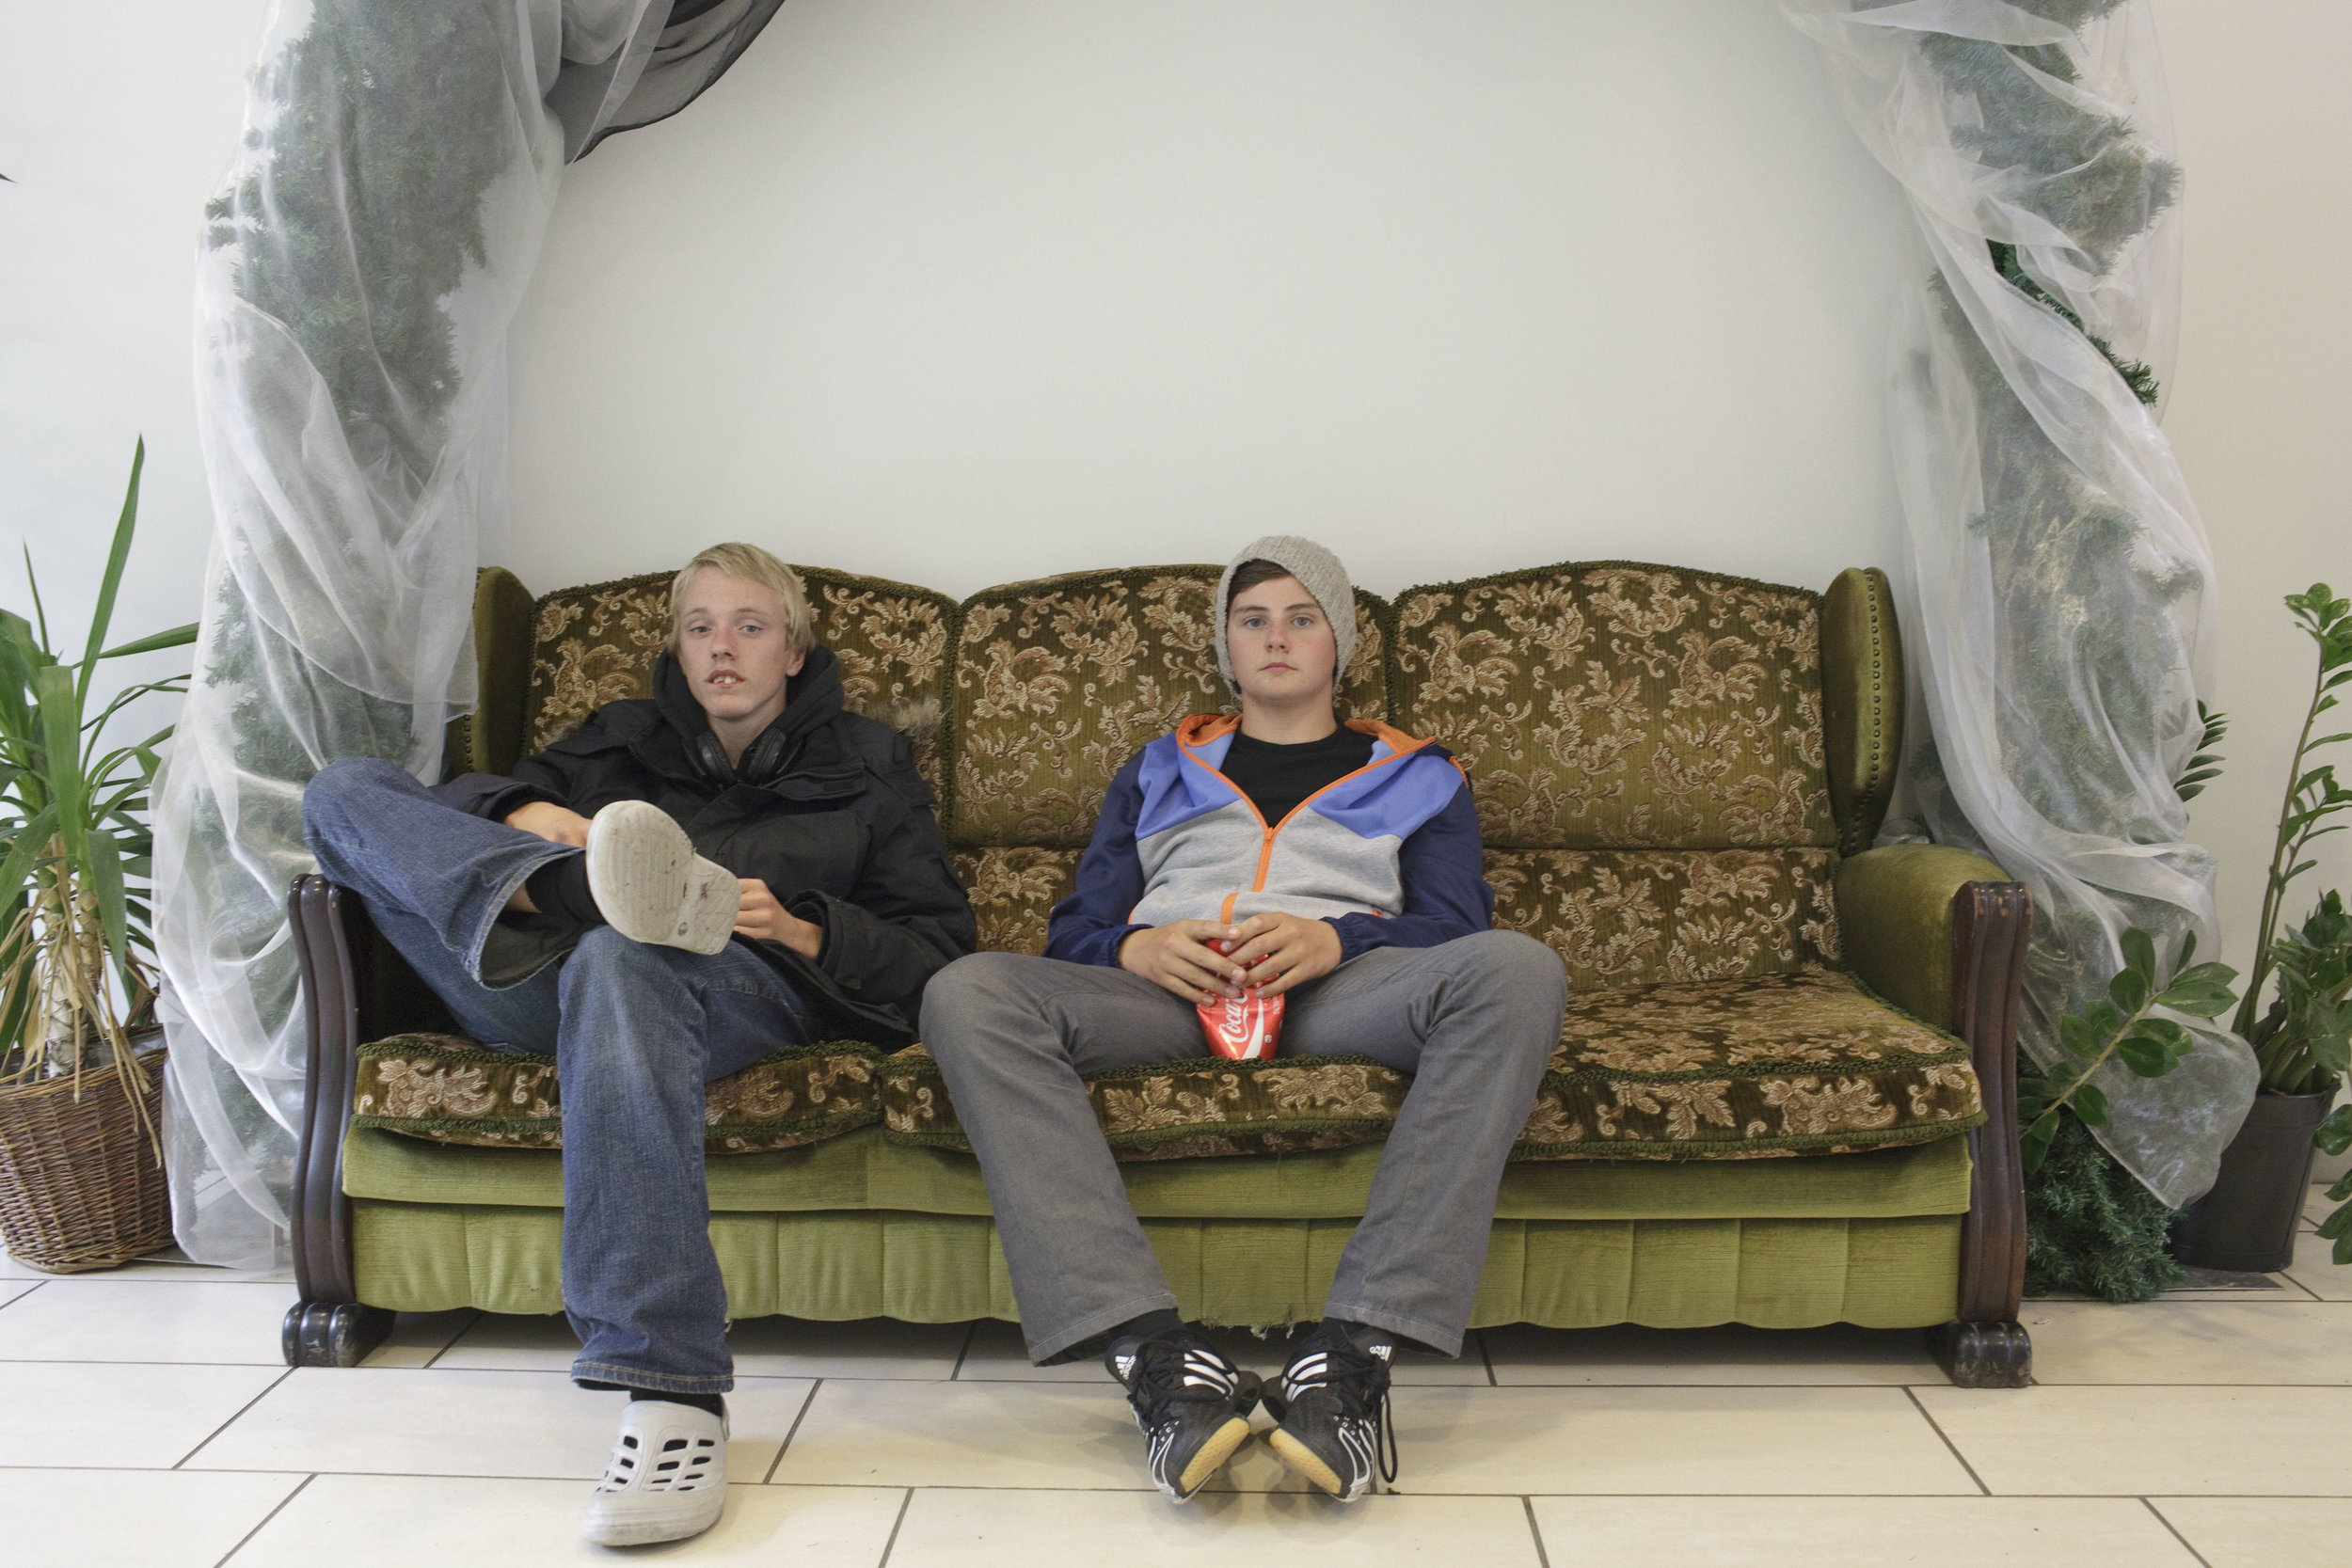 Two teenage boys spend the afternoon at the mall in Hveragerdi.